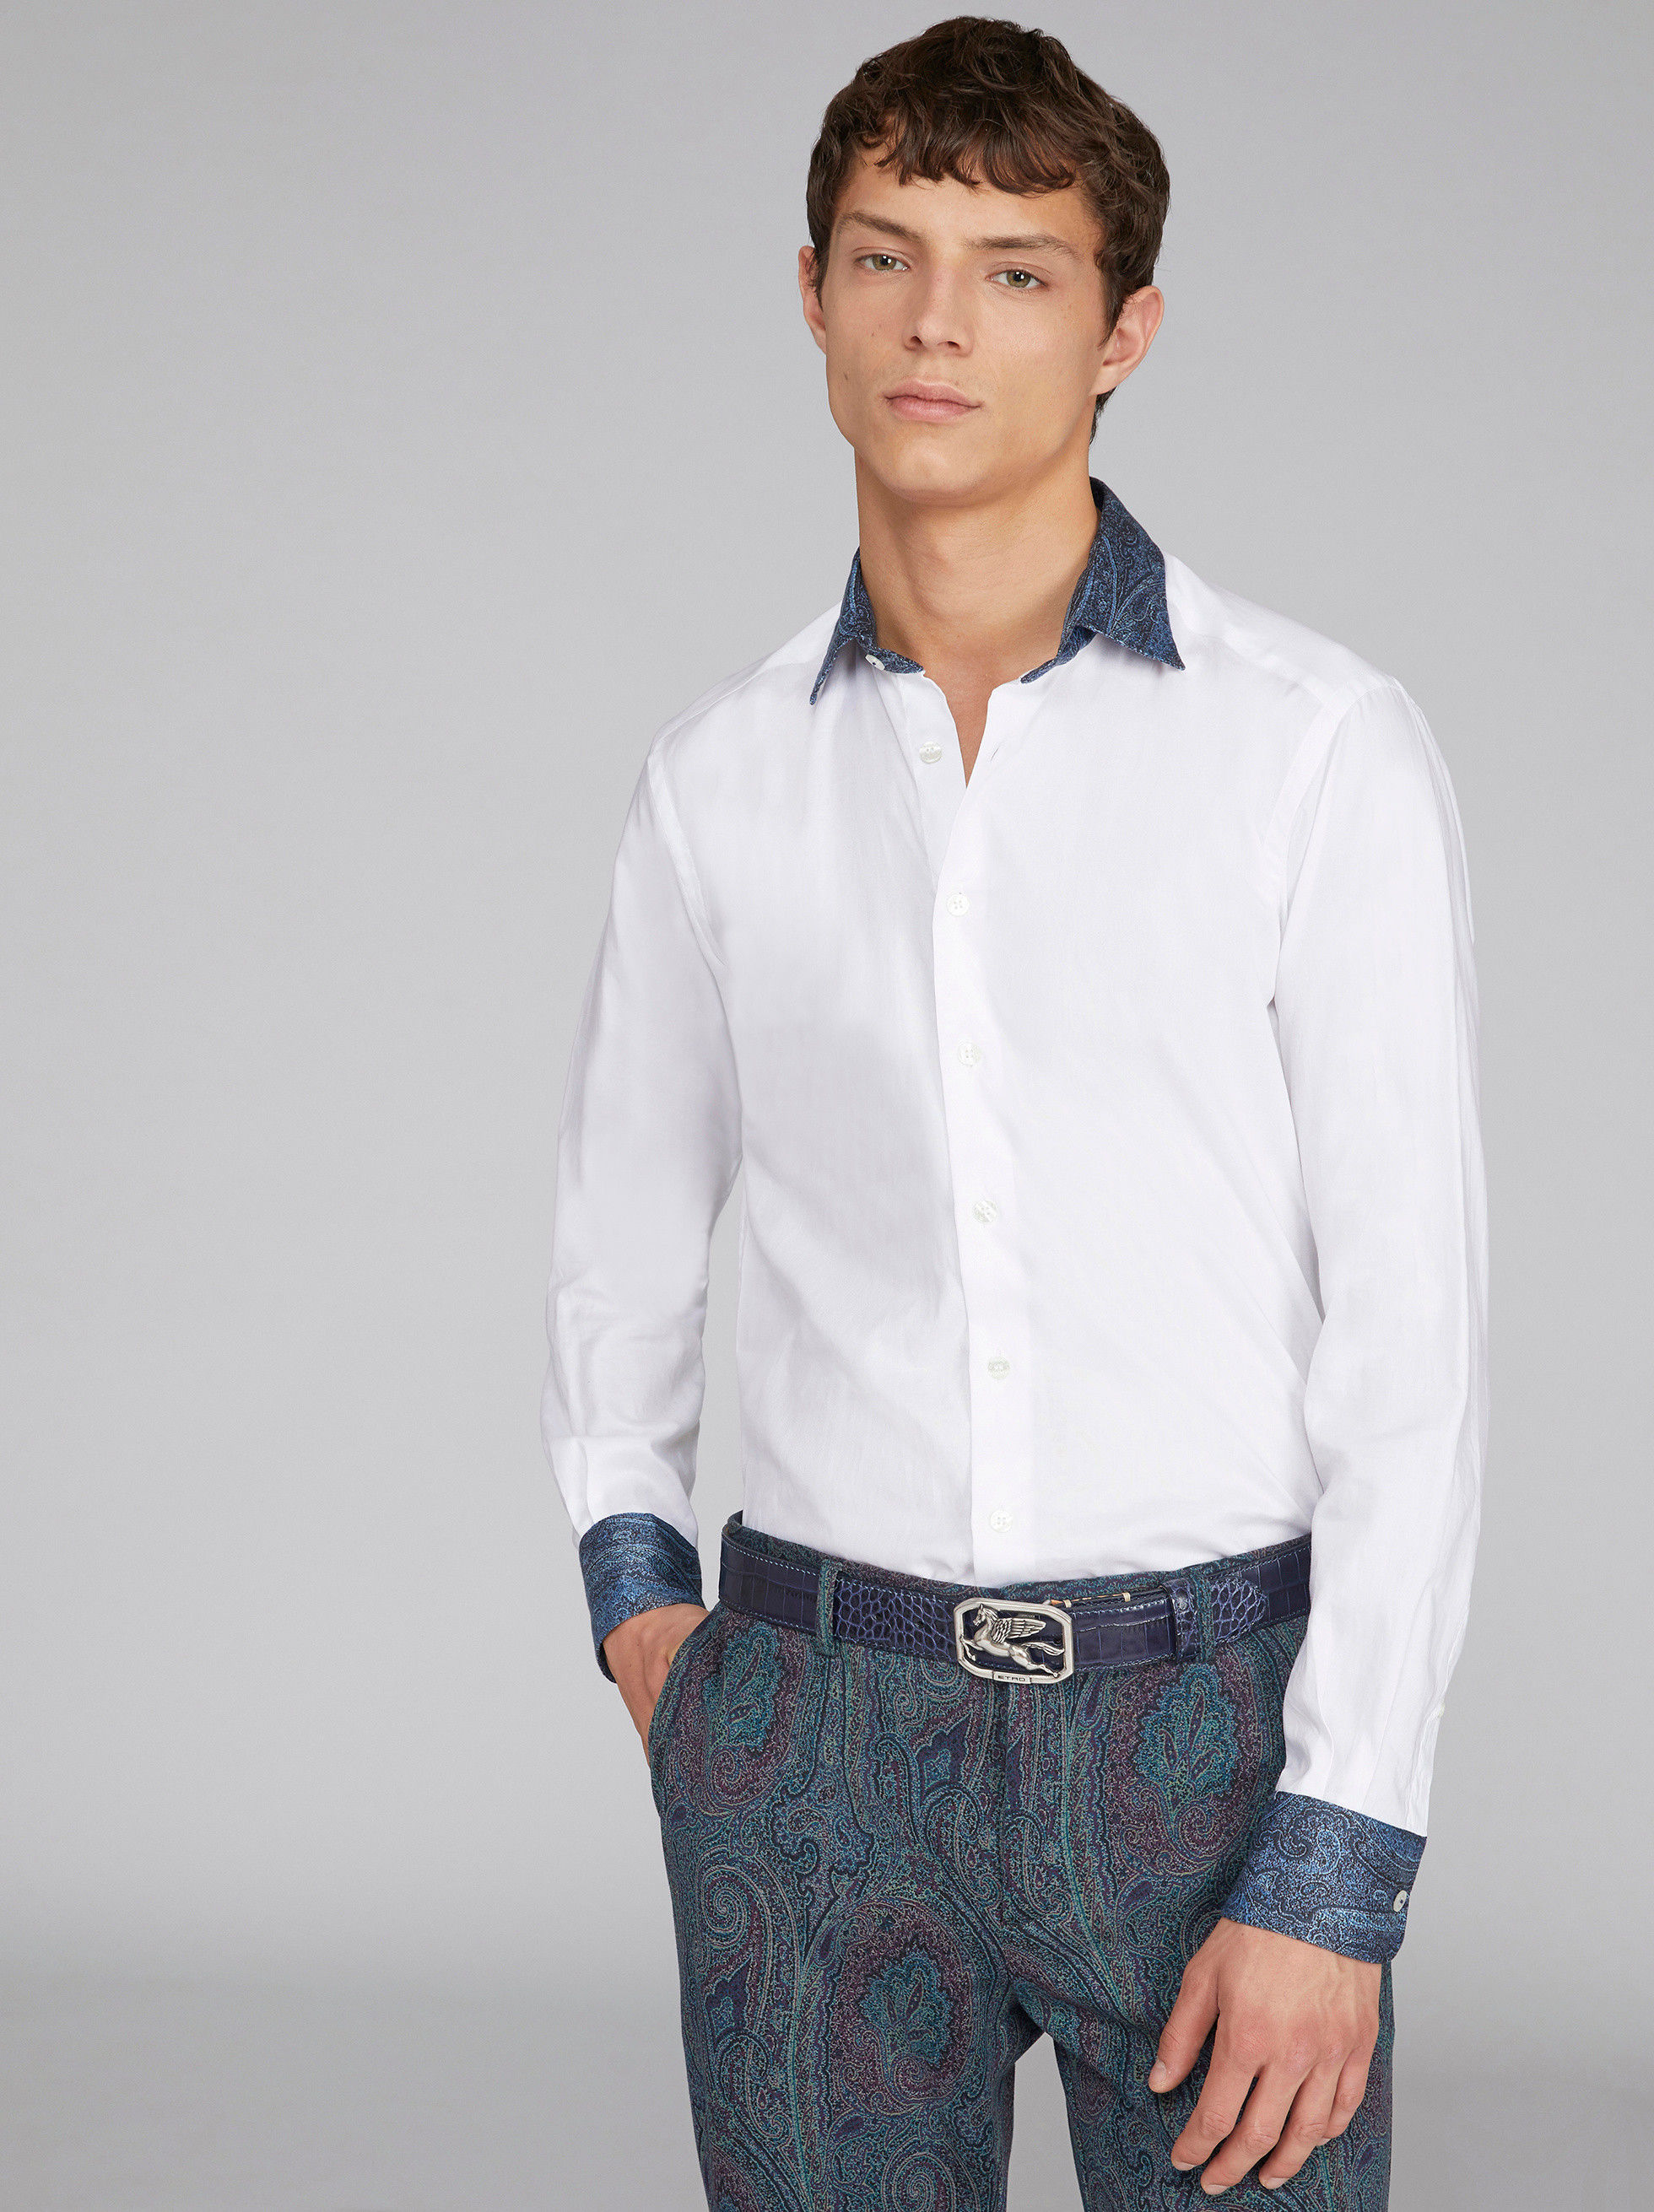 DUAL FABRIC SHIRT WITH PAISLEY DETAILS